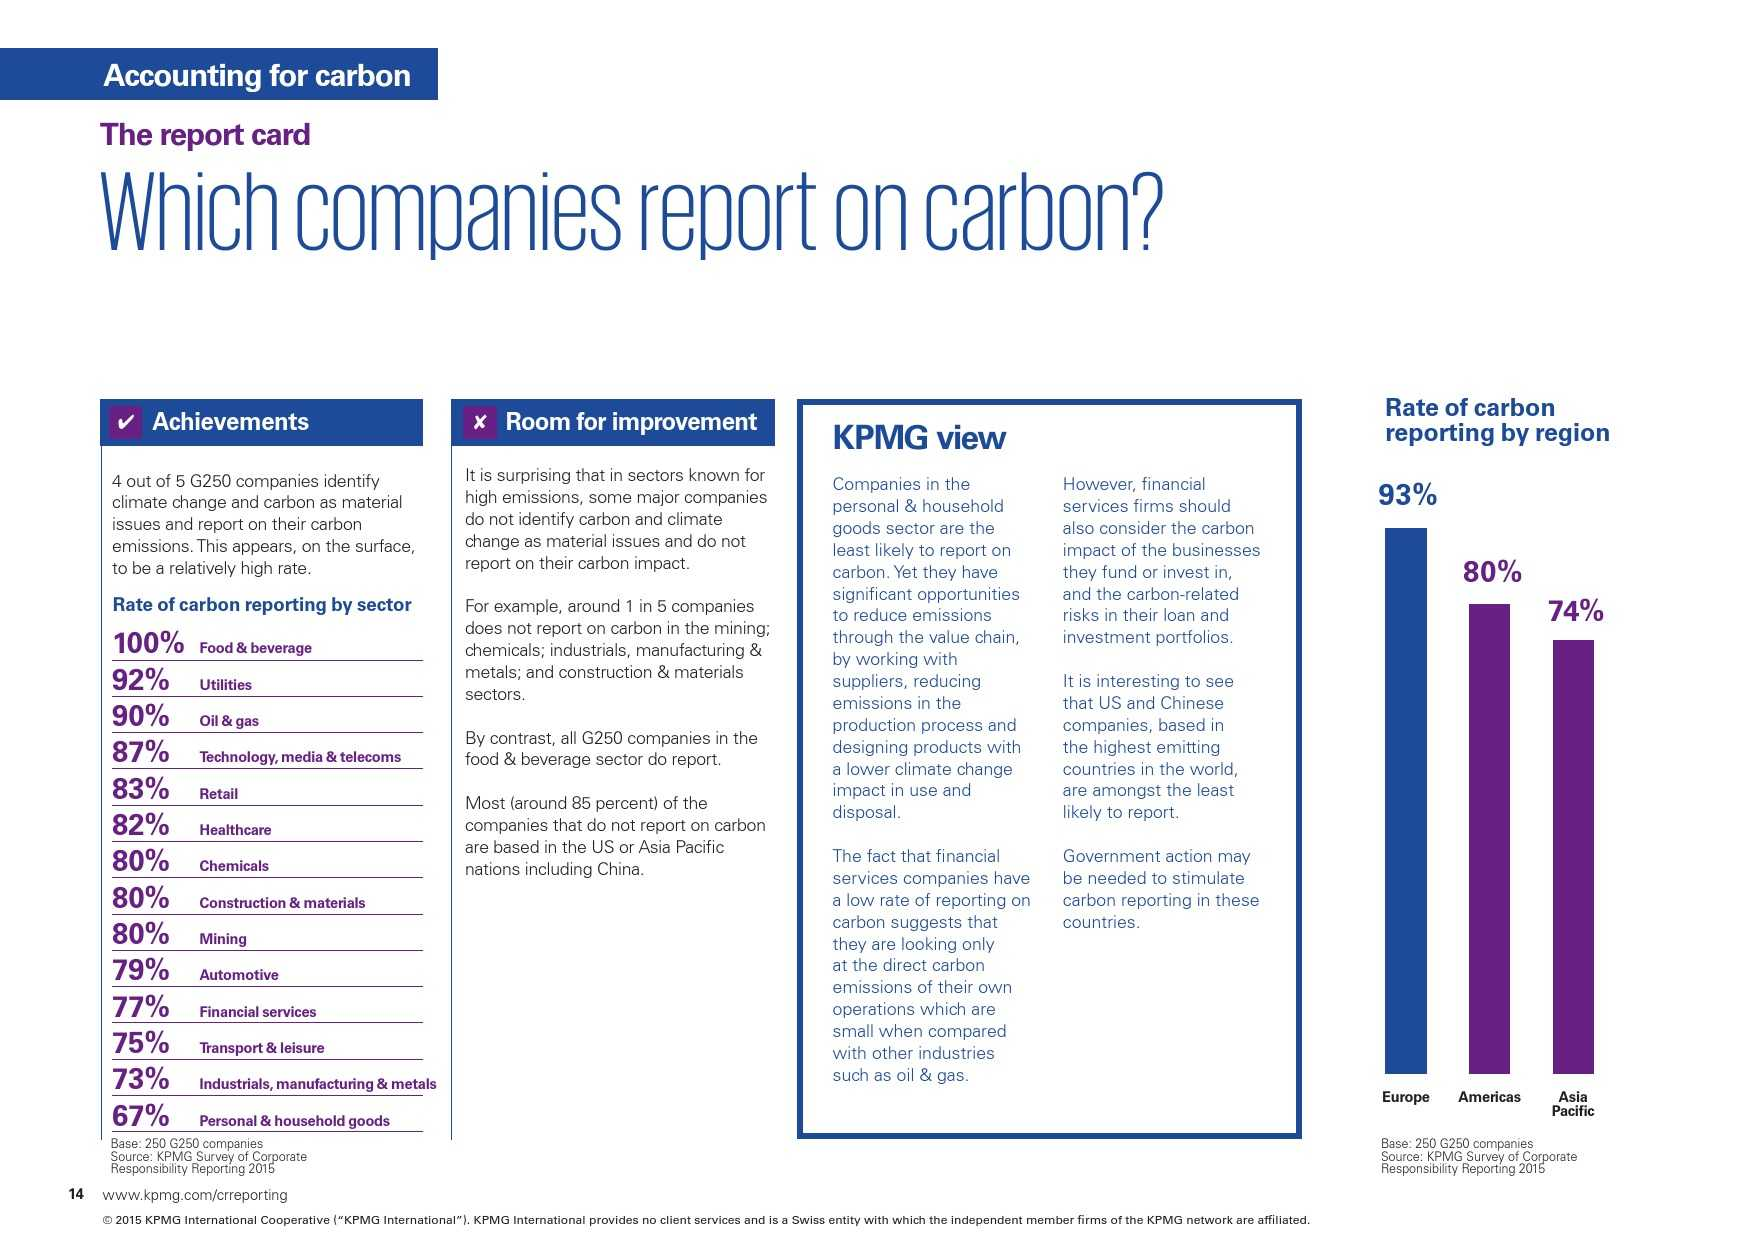 kpmg-international-survey-of-corporate-responsibility-reporting-2015_000014